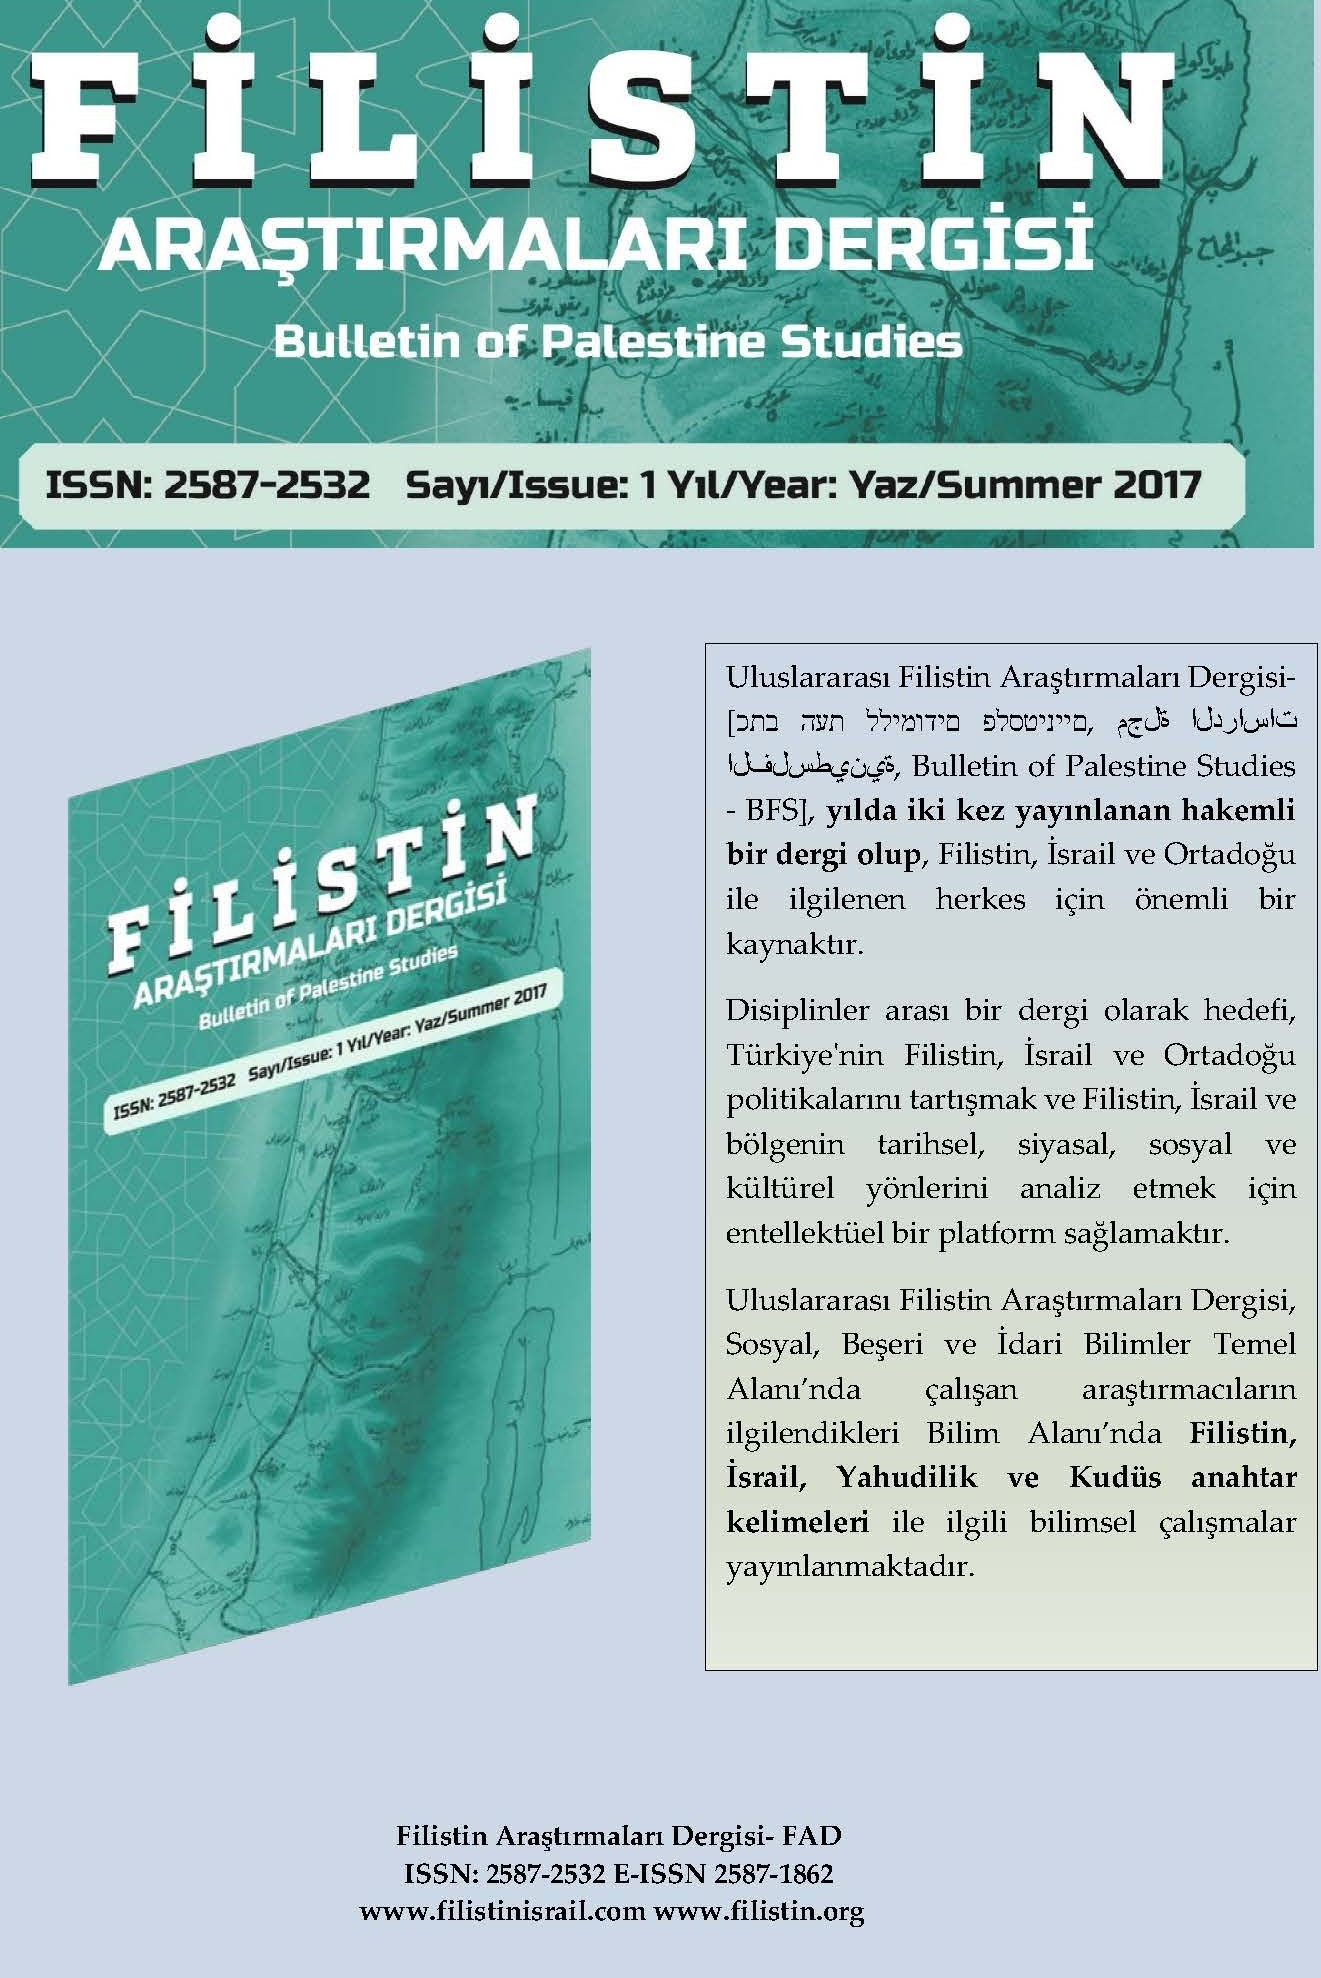 BULLETIN OF PALESTINE STUDIES Cover Image